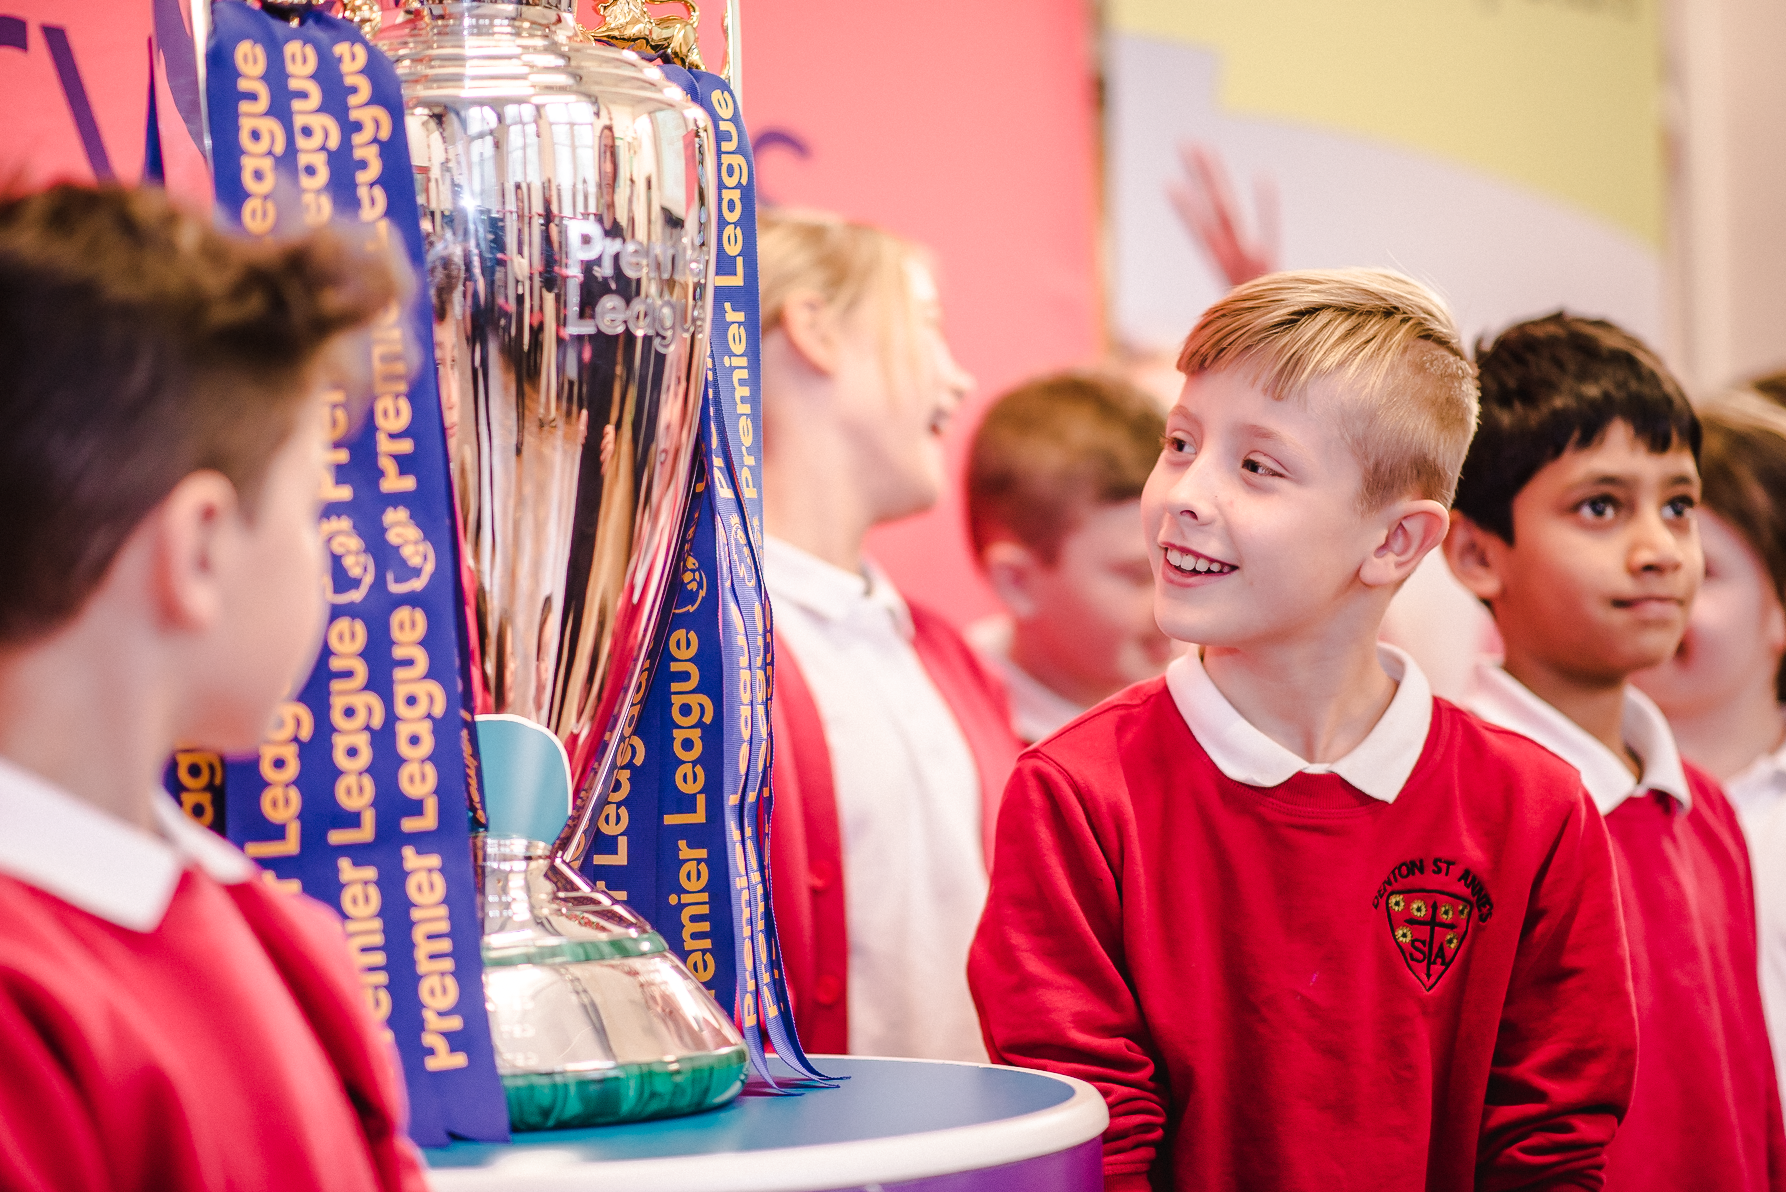 Premier League trophy at St Anthony's Catholic Primary School in Hull.